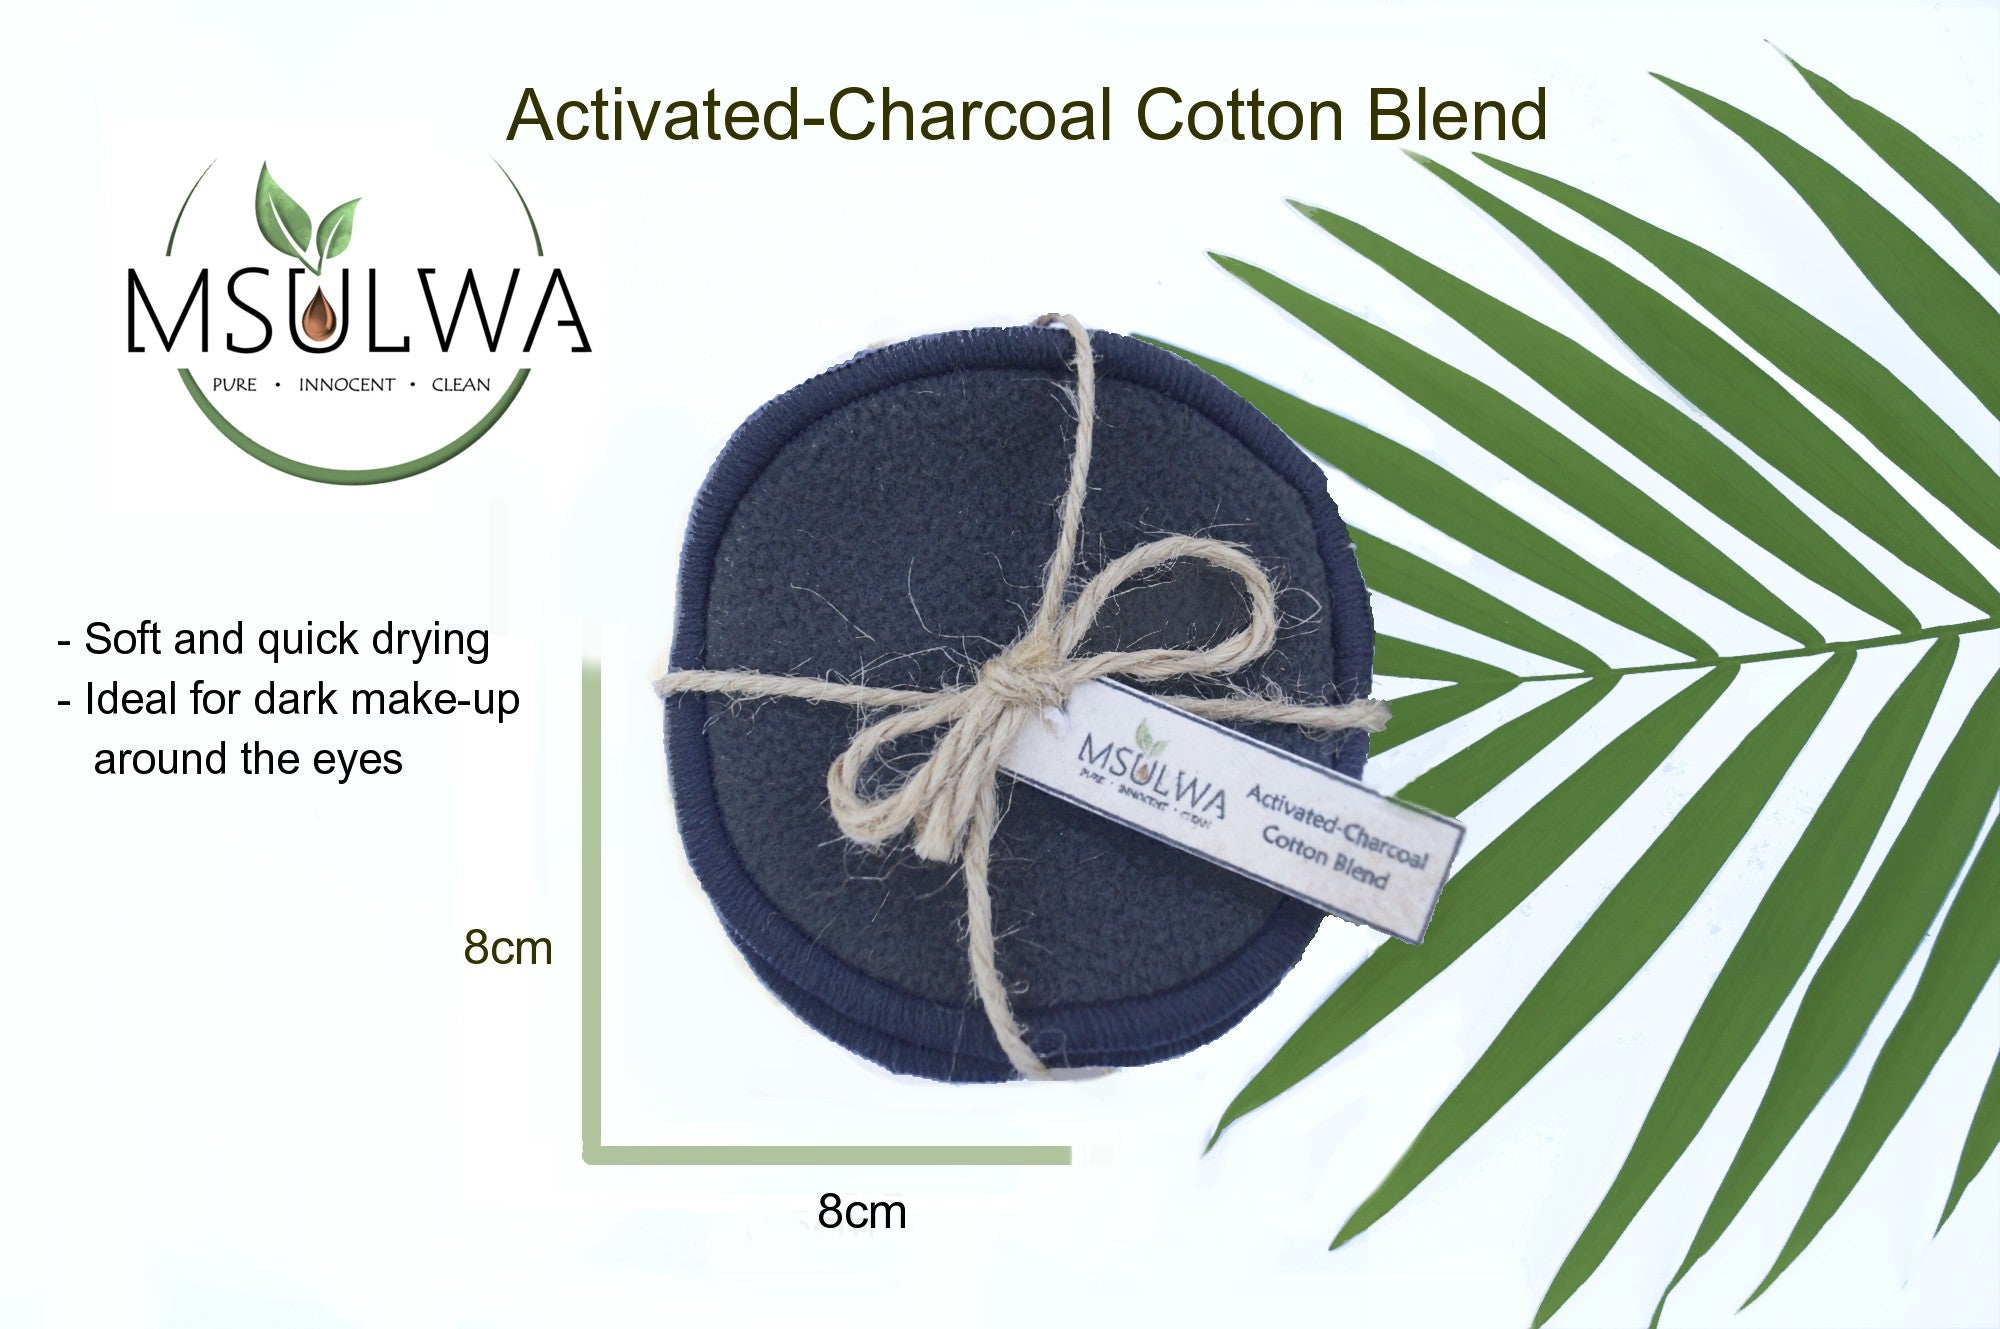 Msulwa Life, activated-charcoal, reusable facial rounds, sustainable, natural, organic,